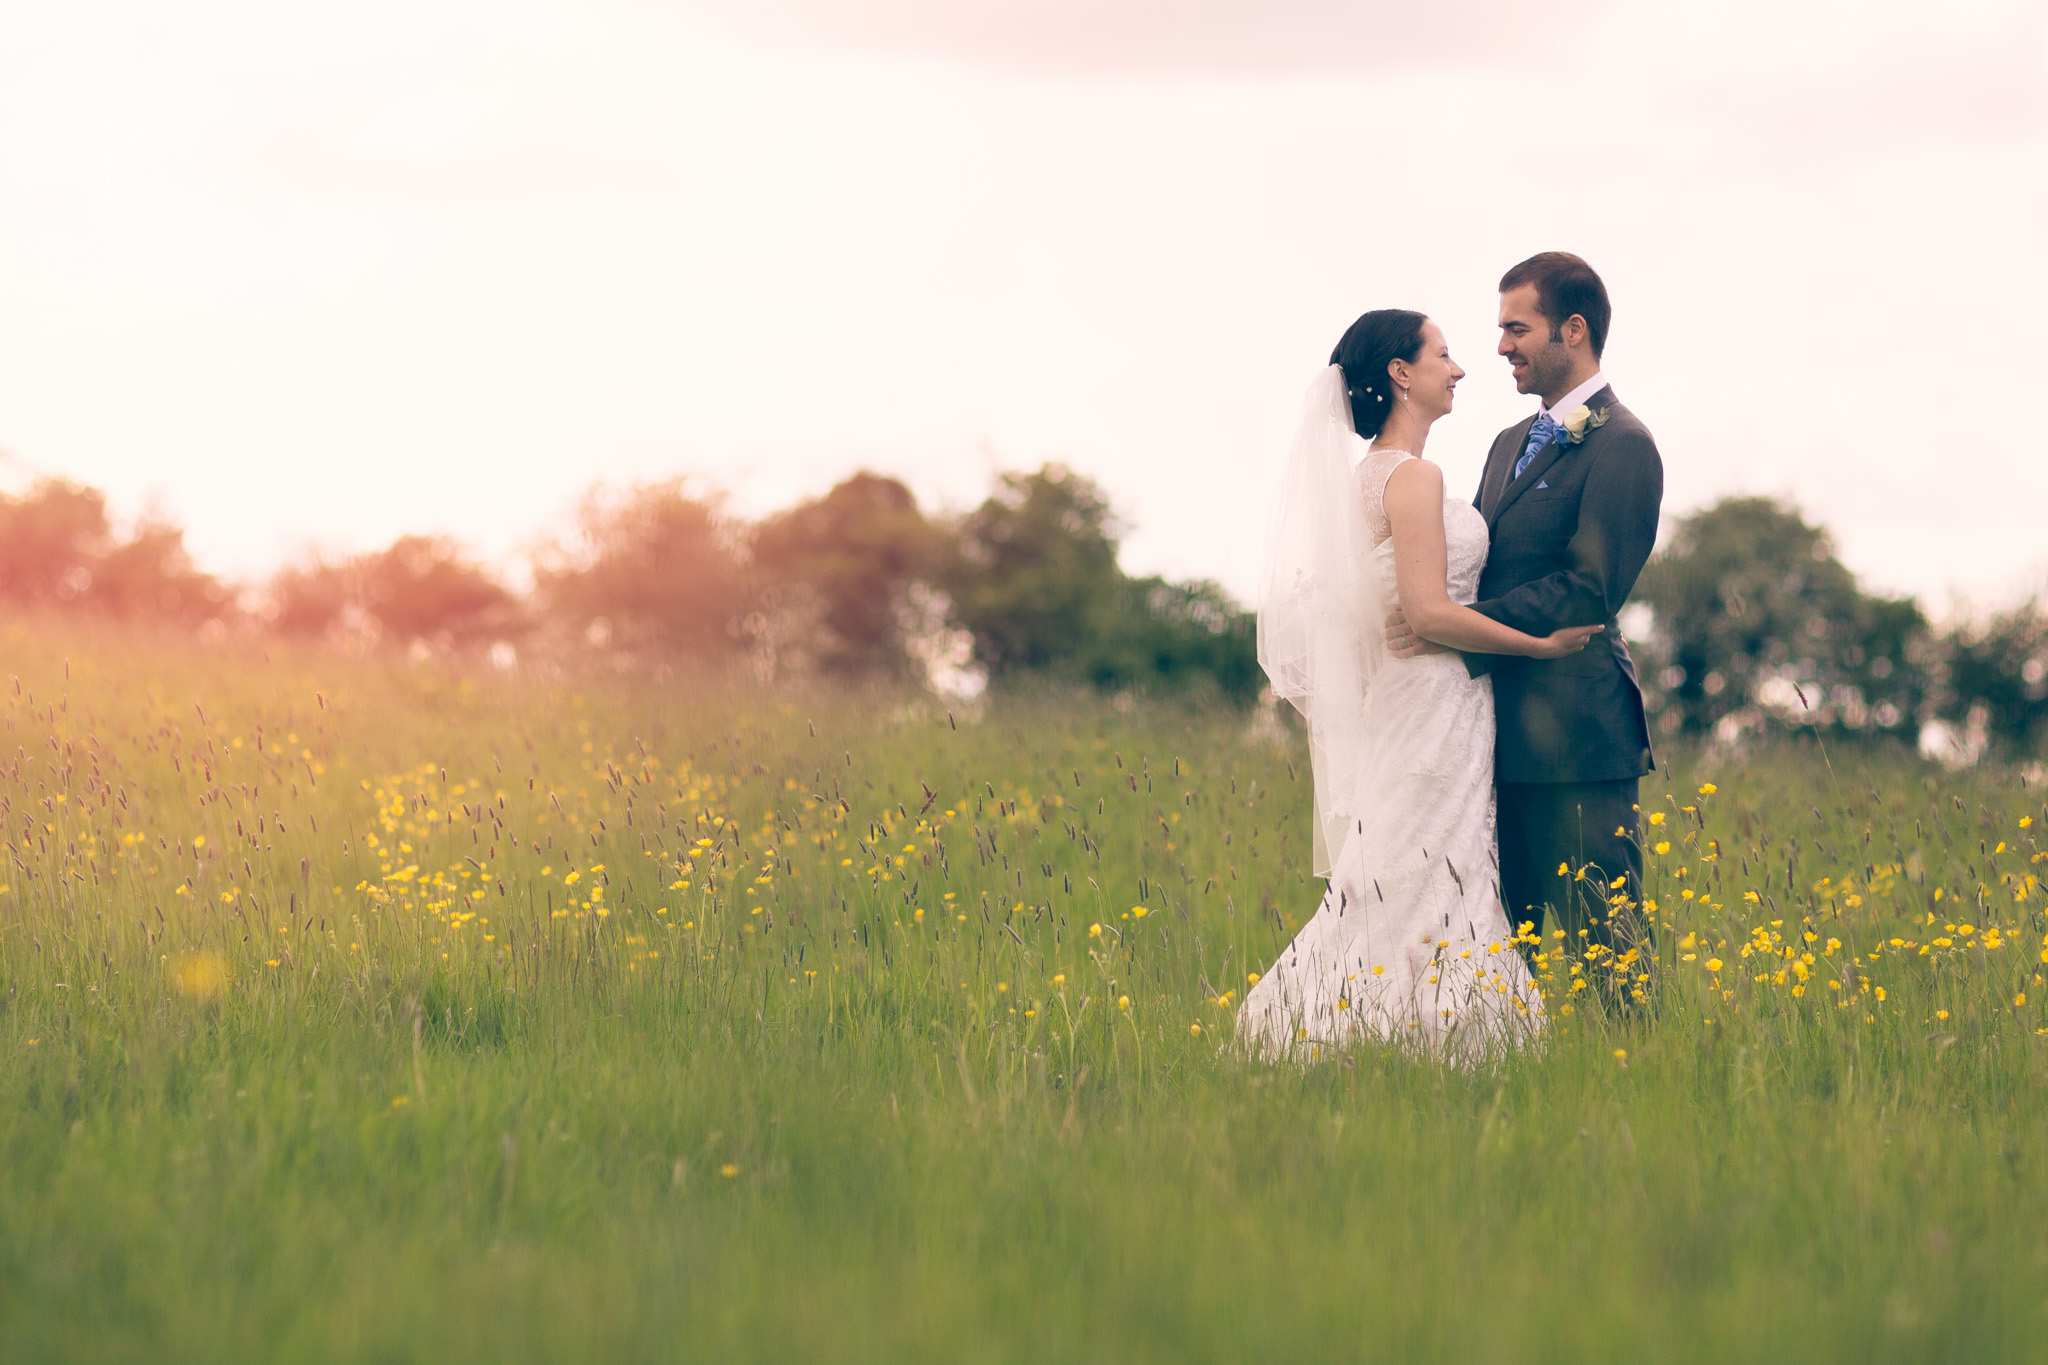 Bristol-Wedding-Photographer-Mark-Barnes-Winkworth_Farm-Jack-and-Claire-201.jpg